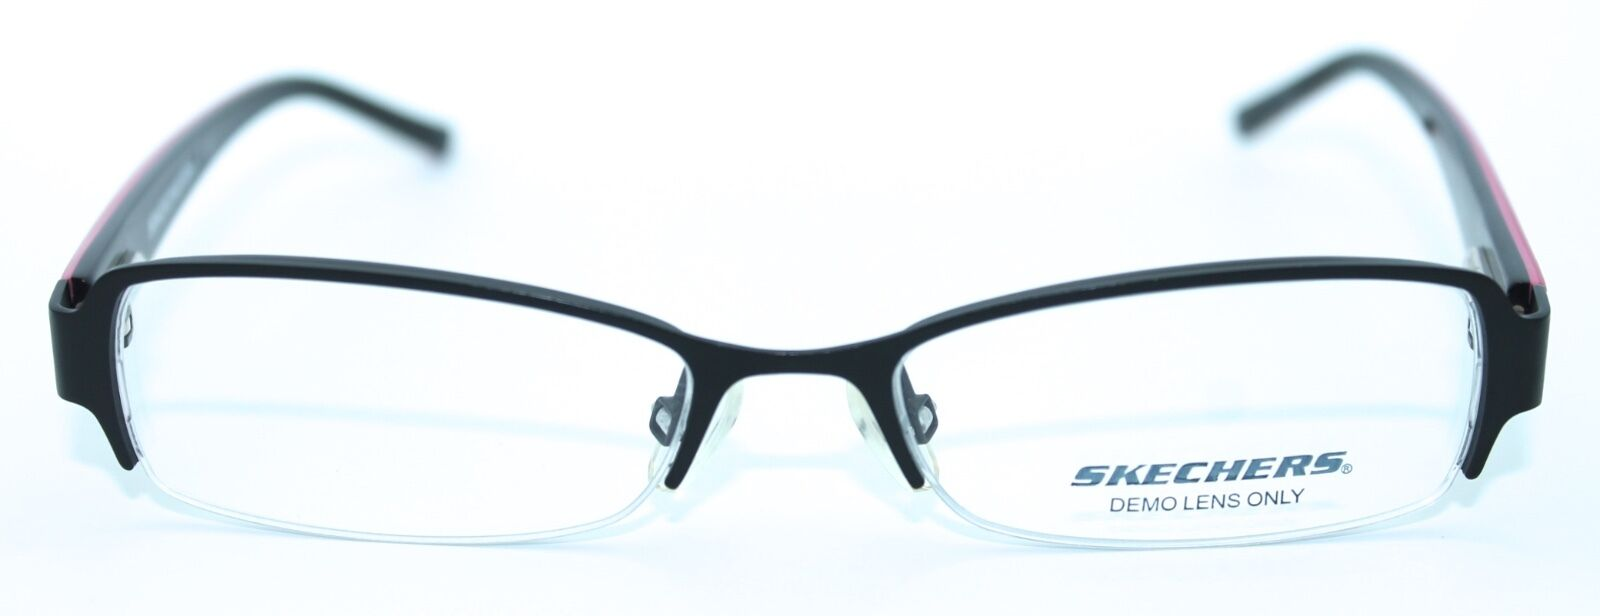 SKECHERS SK1006 SBLK 46/15 Satin Black Authentic Children Eyeglasses ...